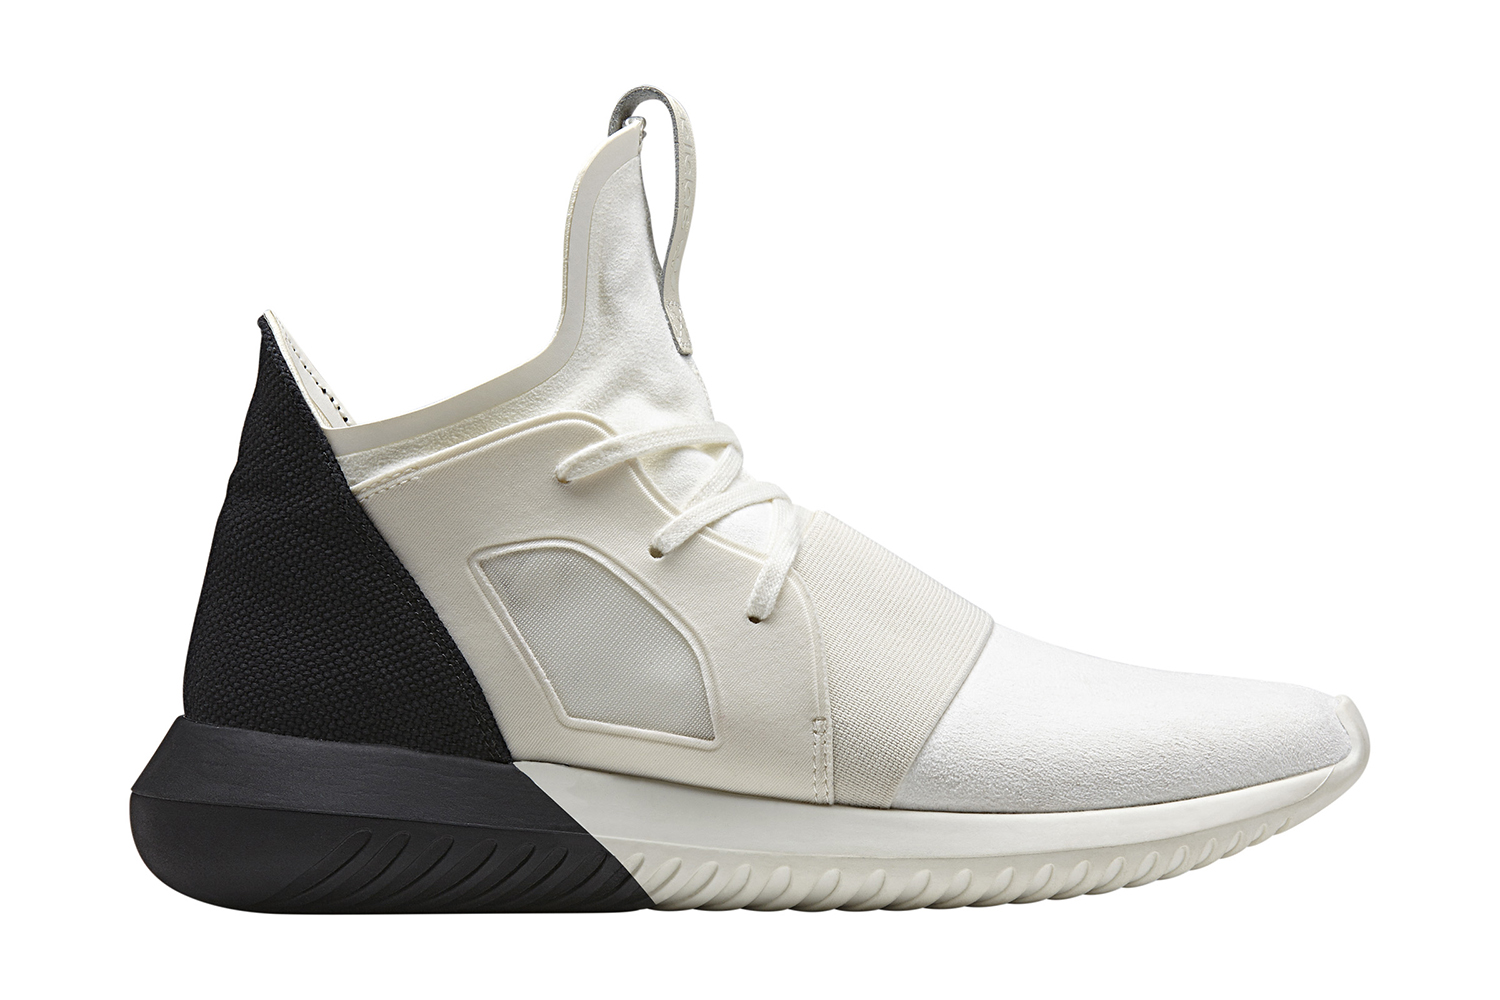 Adidas Tubular Defiant Black And White